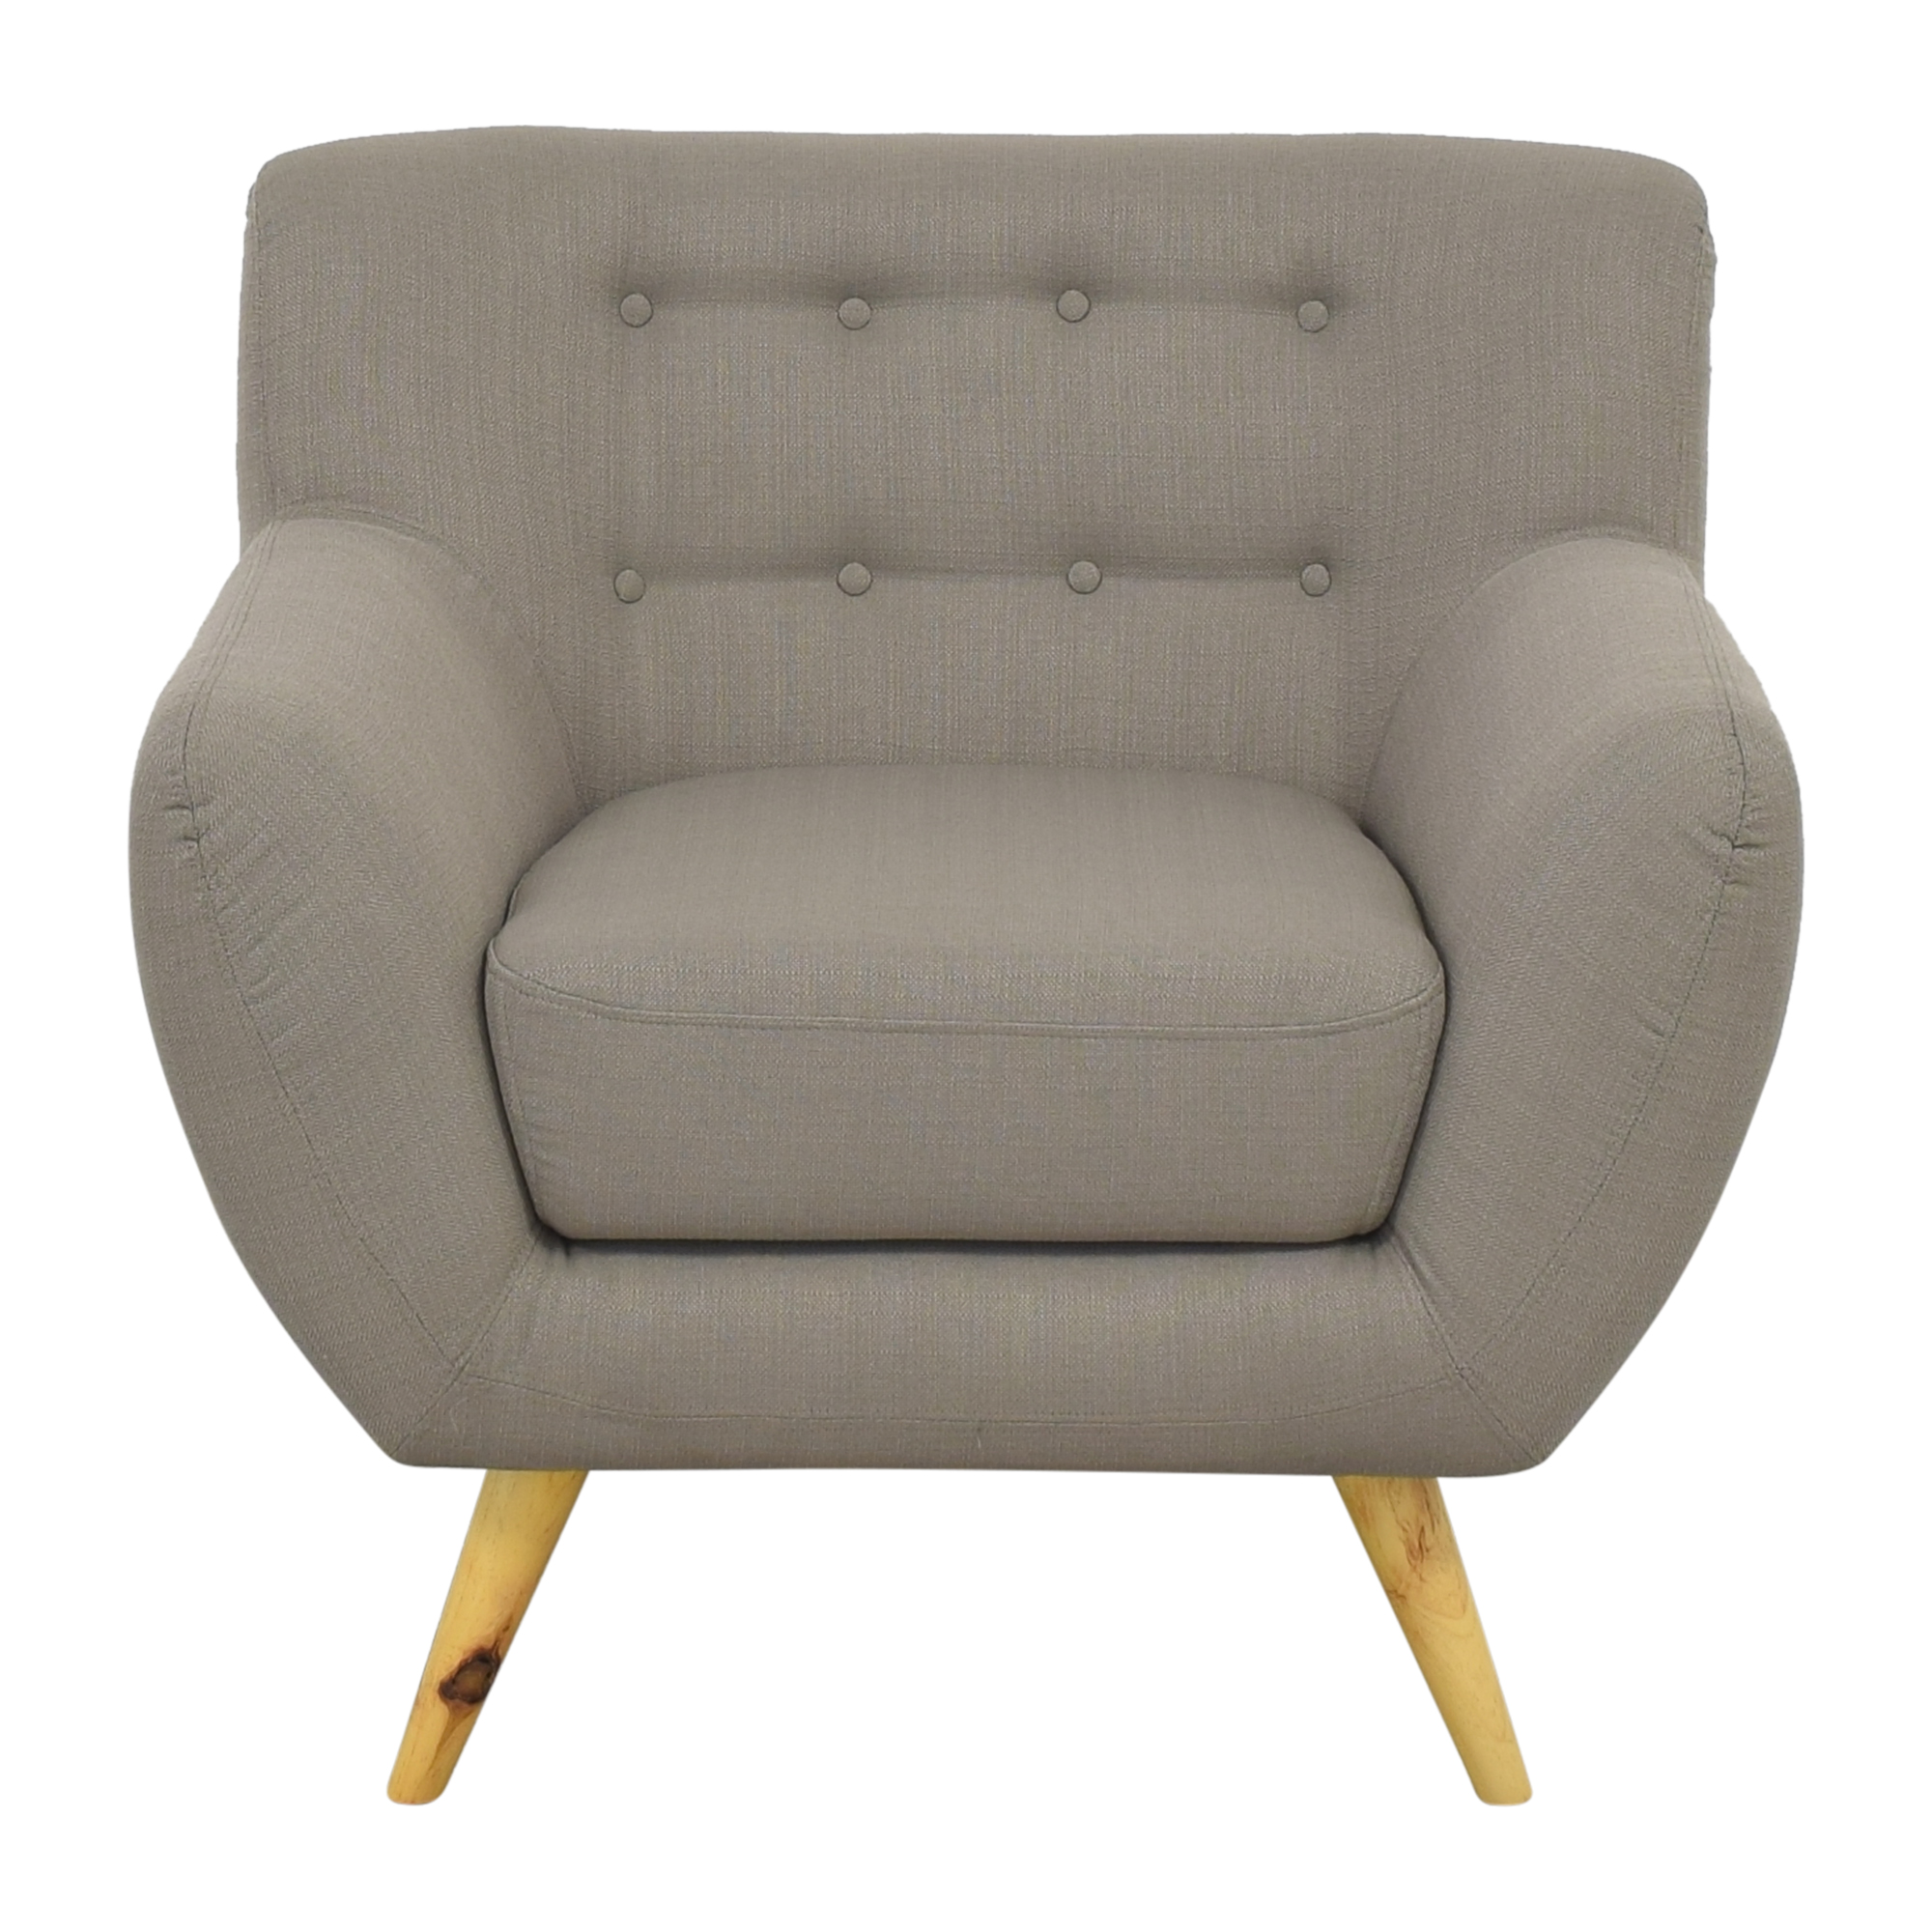 Modern Upholstered Accent Chair / Accent Chairs